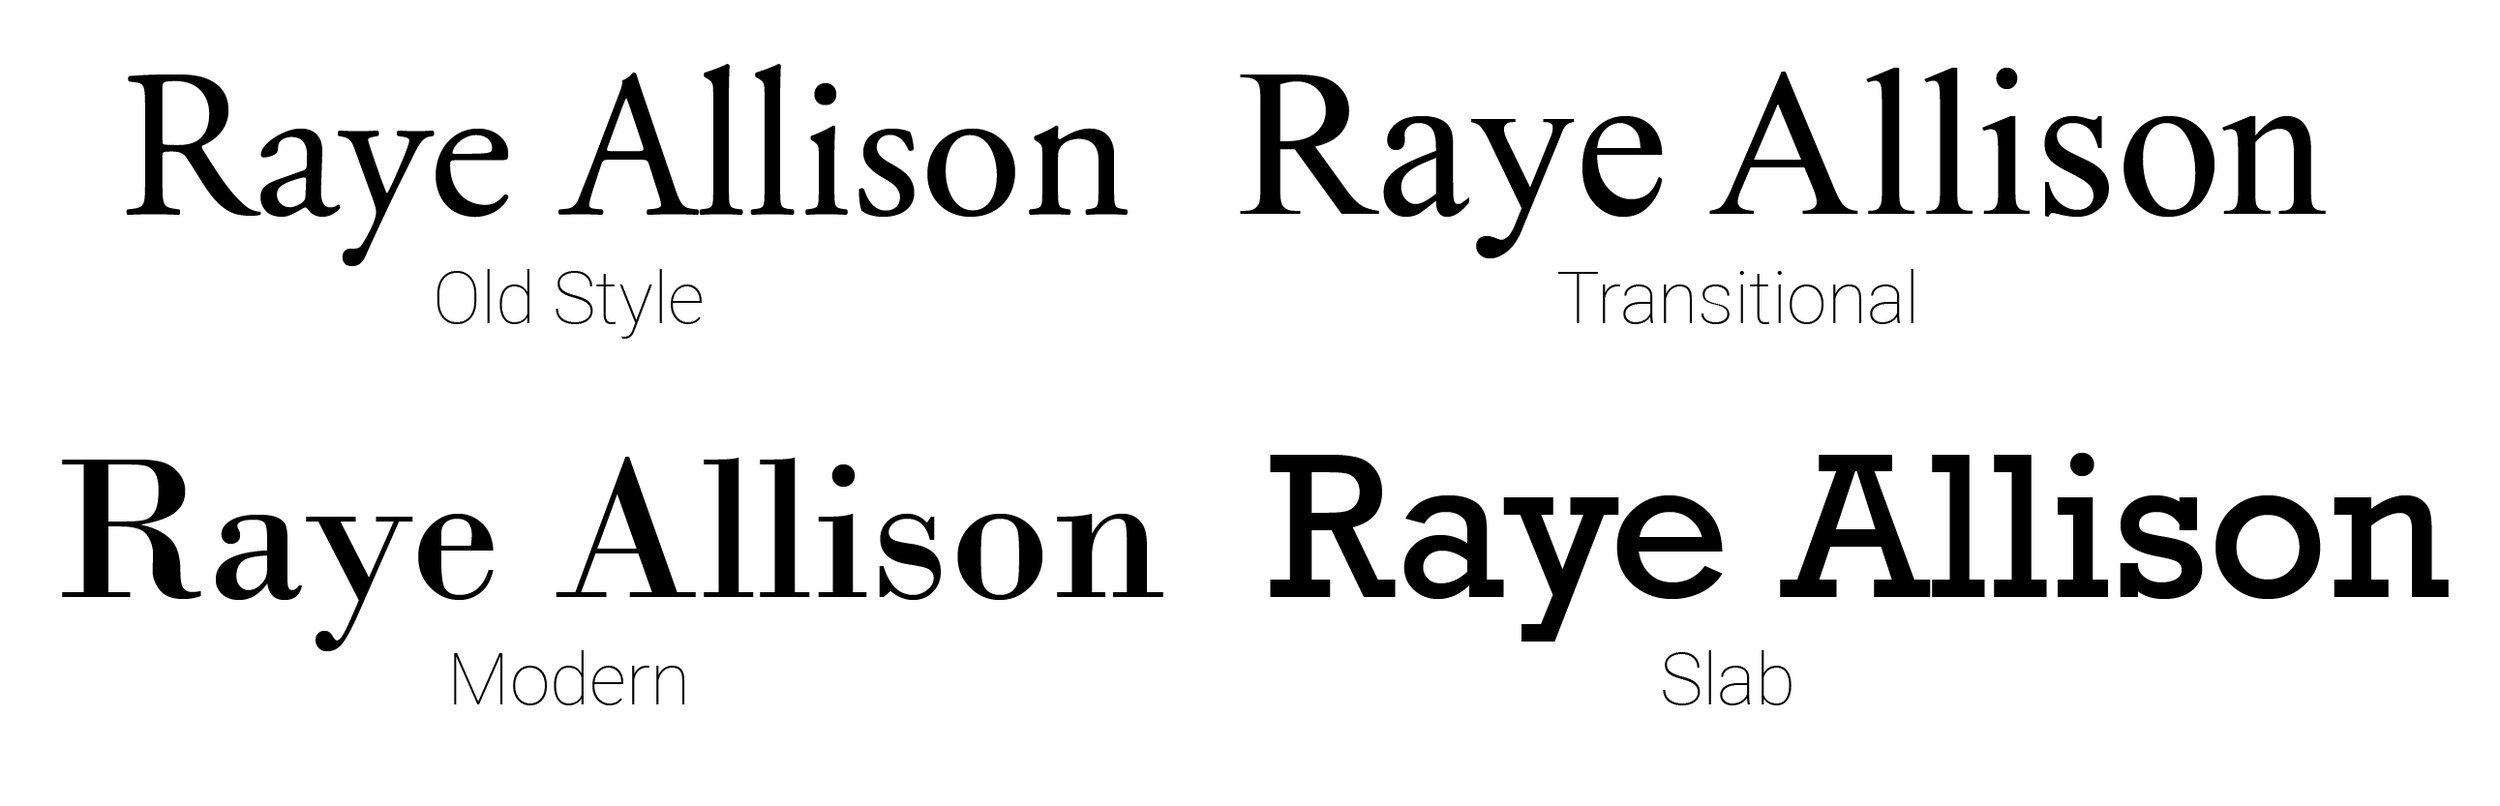 A serif typeface has an extra stroke, or serif, at the upper and lower ends of the main stems and strokes.